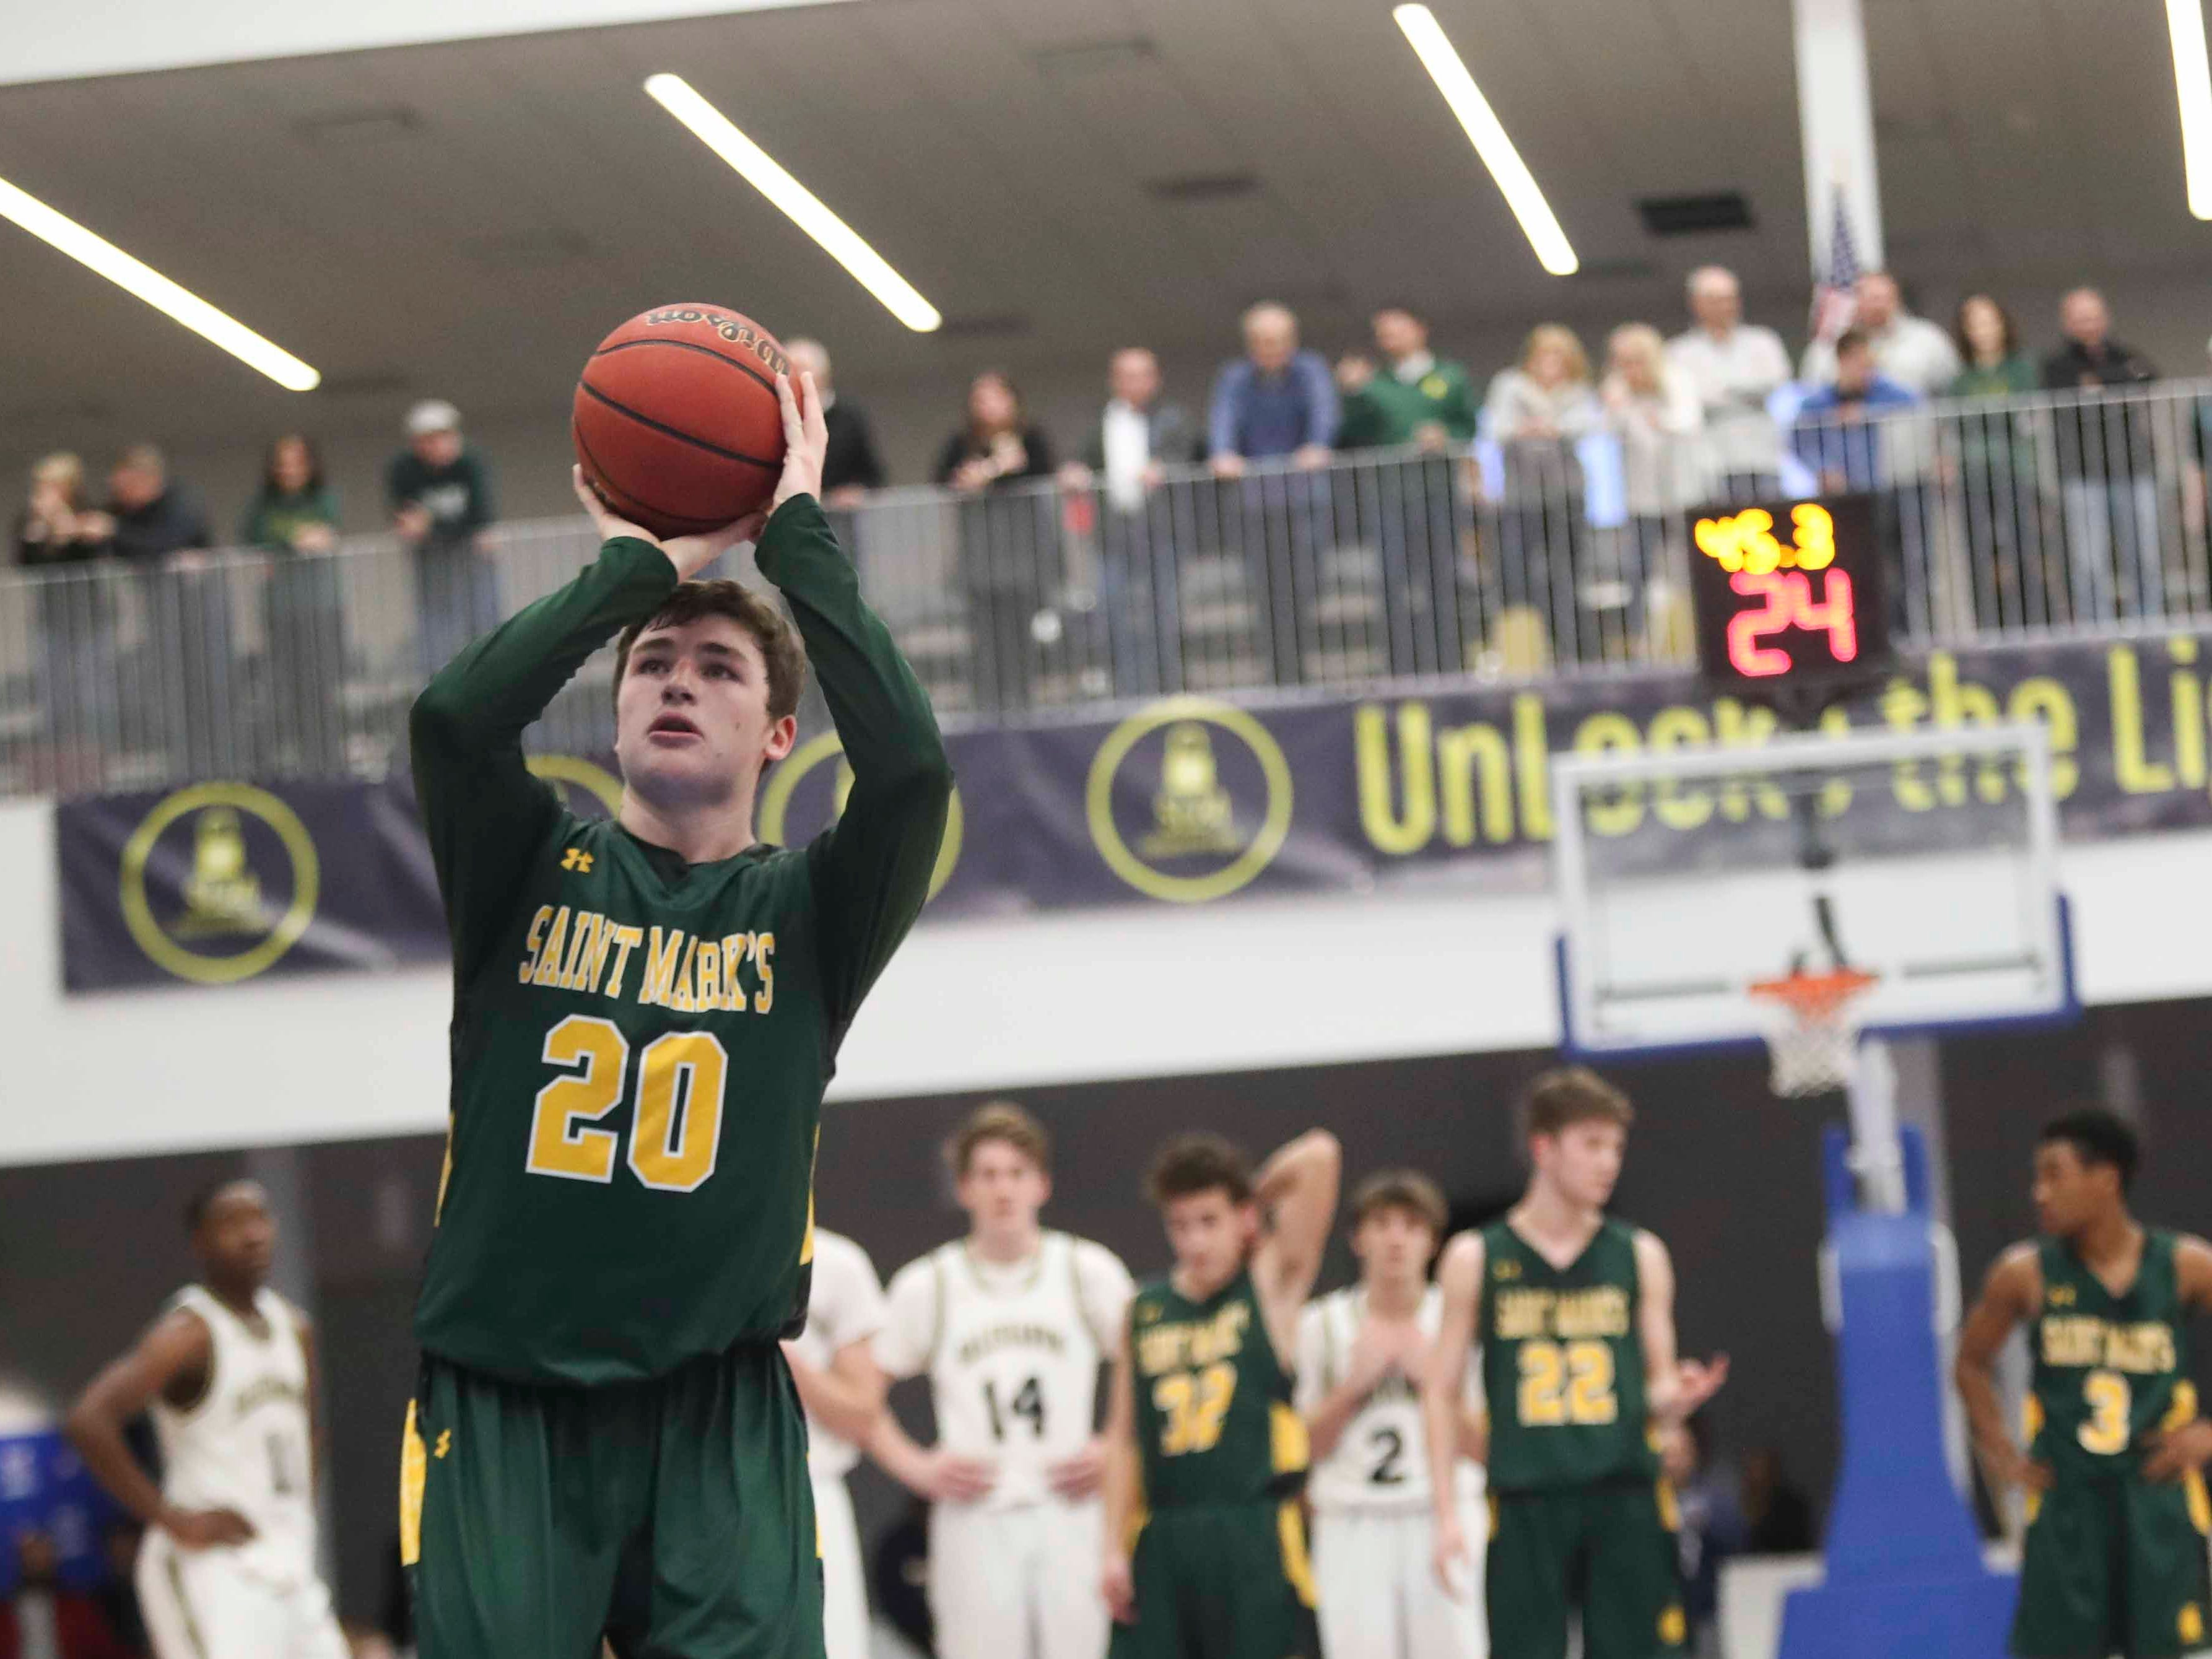 St. Mark's Eric Ludman lines up a free throw in front of a shot clock at the 76ers Fieldhouse in Wilmington Friday. The clocks were not being used in this game, the SL24 Memorial Basketball Classic in early February.